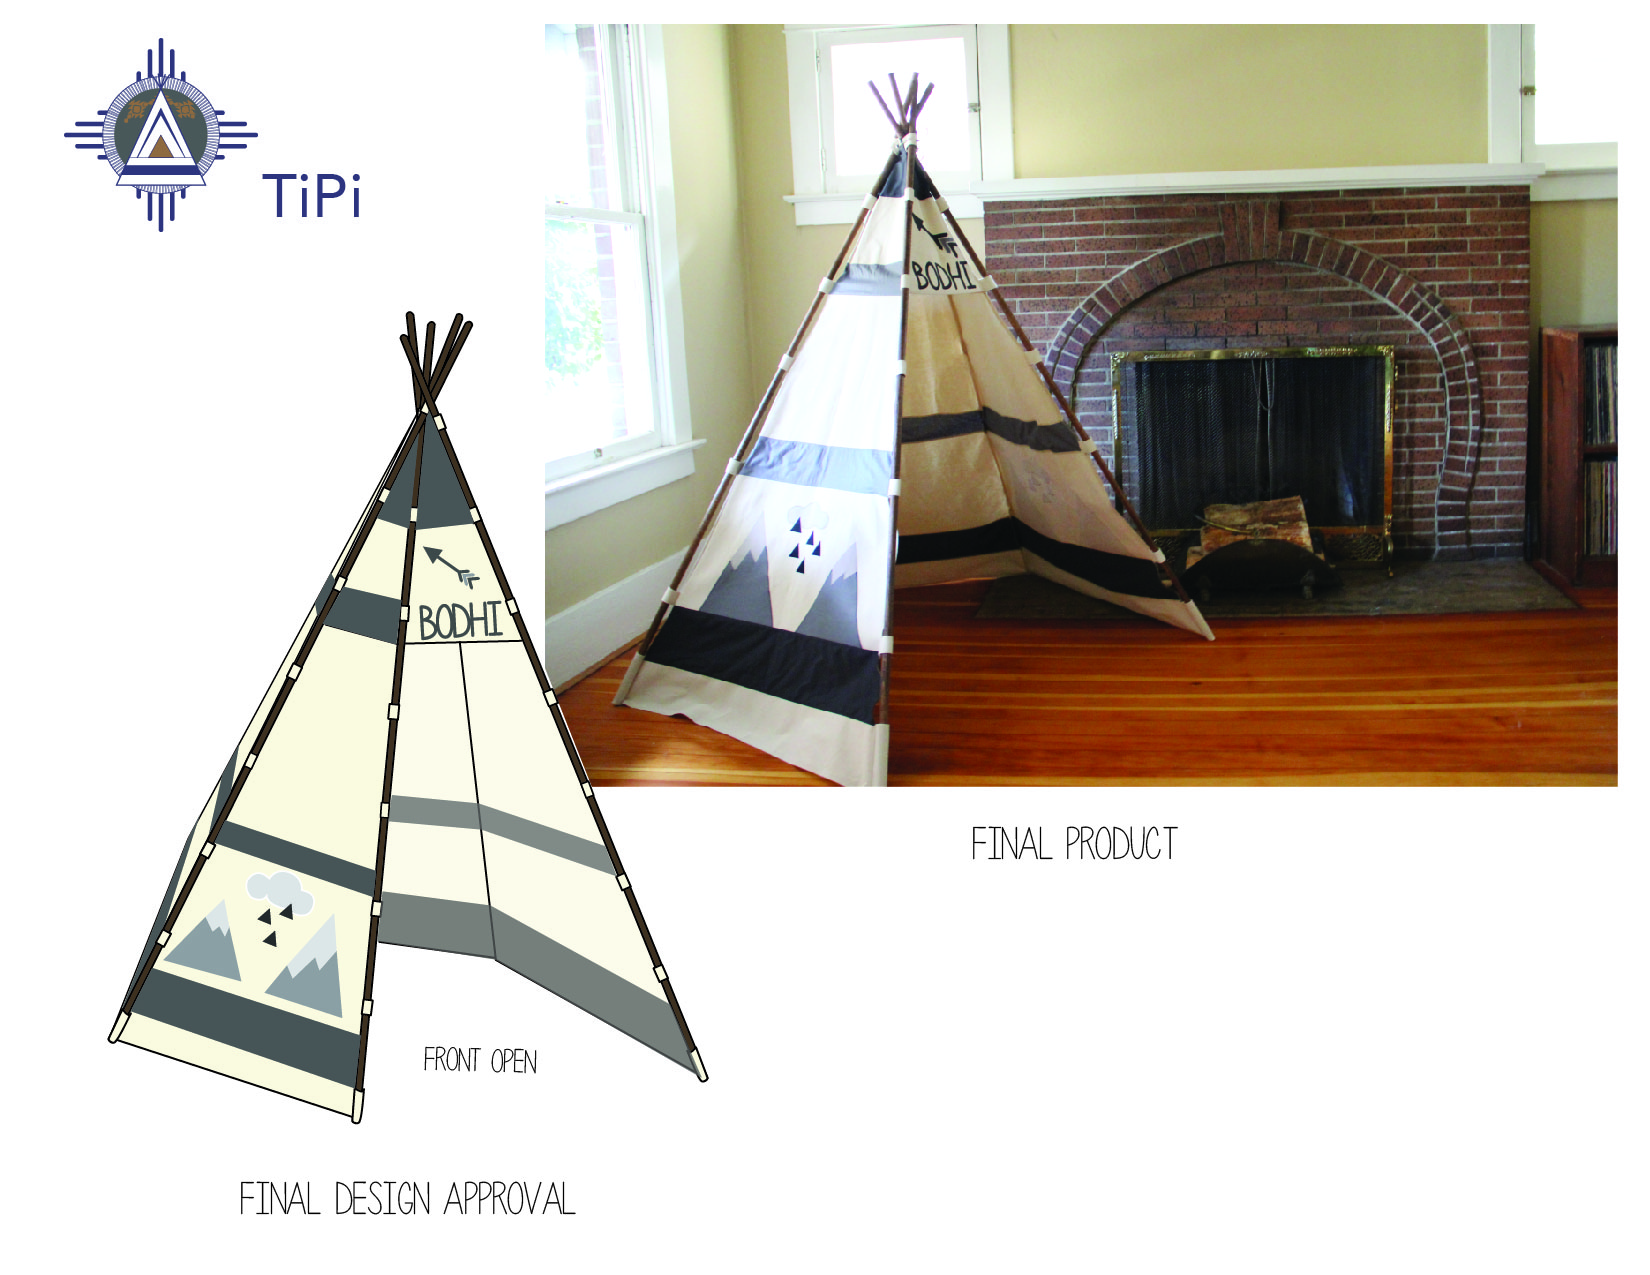 11_Tipi Look Book.jpg